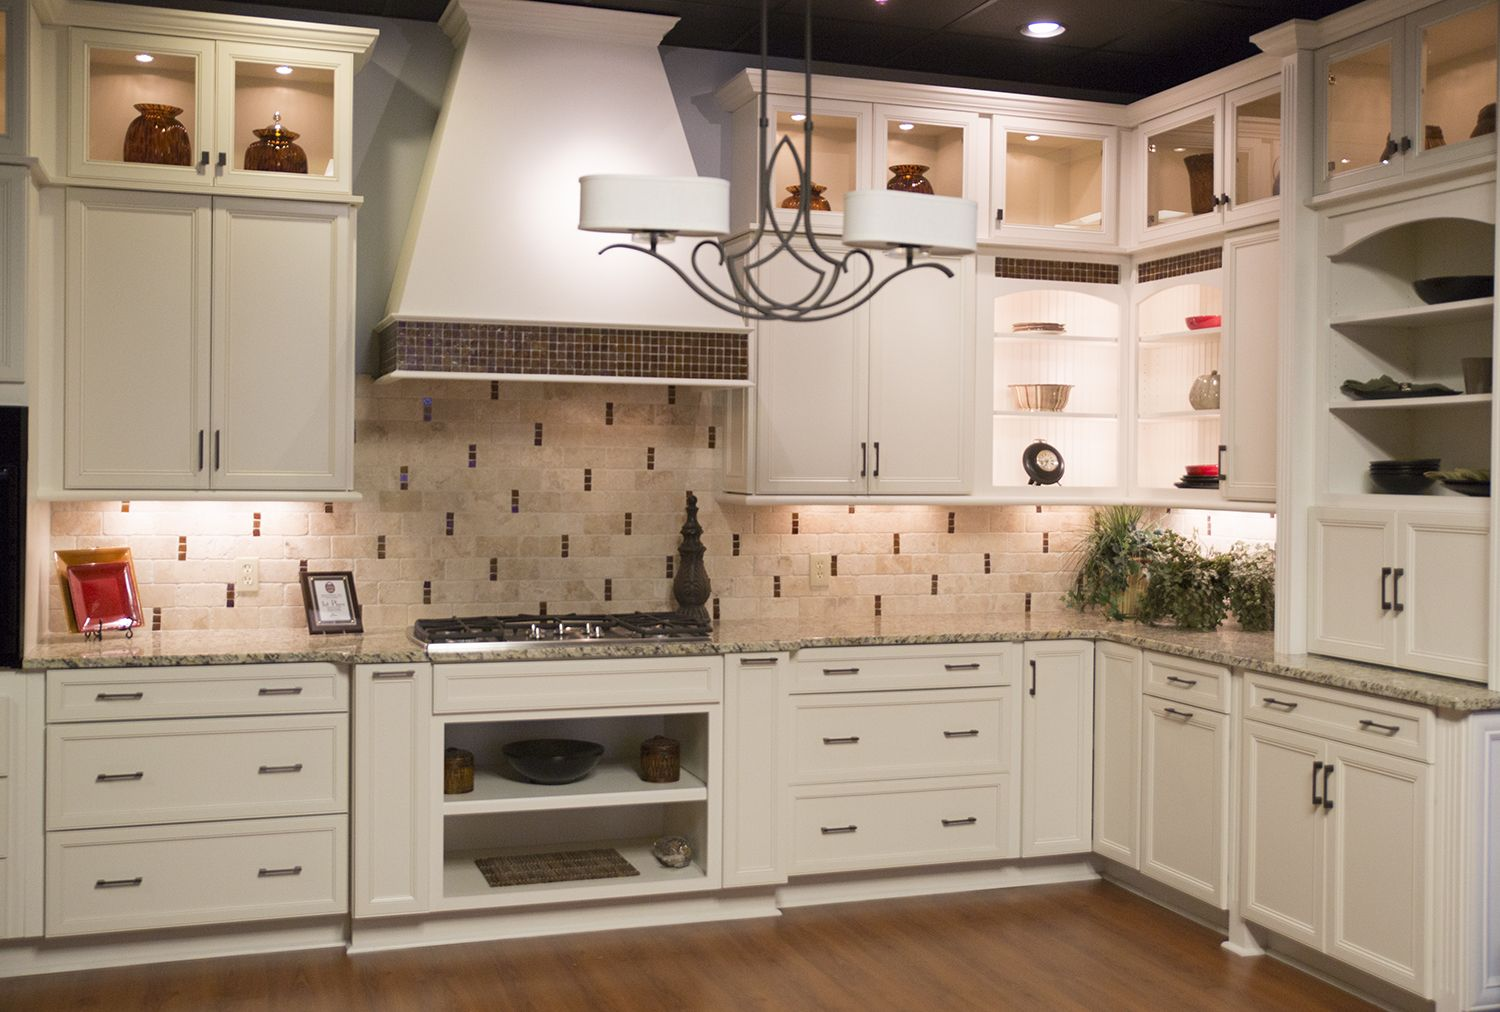 Marsh Furniture Gallery Kitchen Bath Remodel Custom Cabinets Countertops Melbourn In 2020 Cabinets And Countertops Solid Wood Kitchen Cabinets Custom Kitchen Cabinets